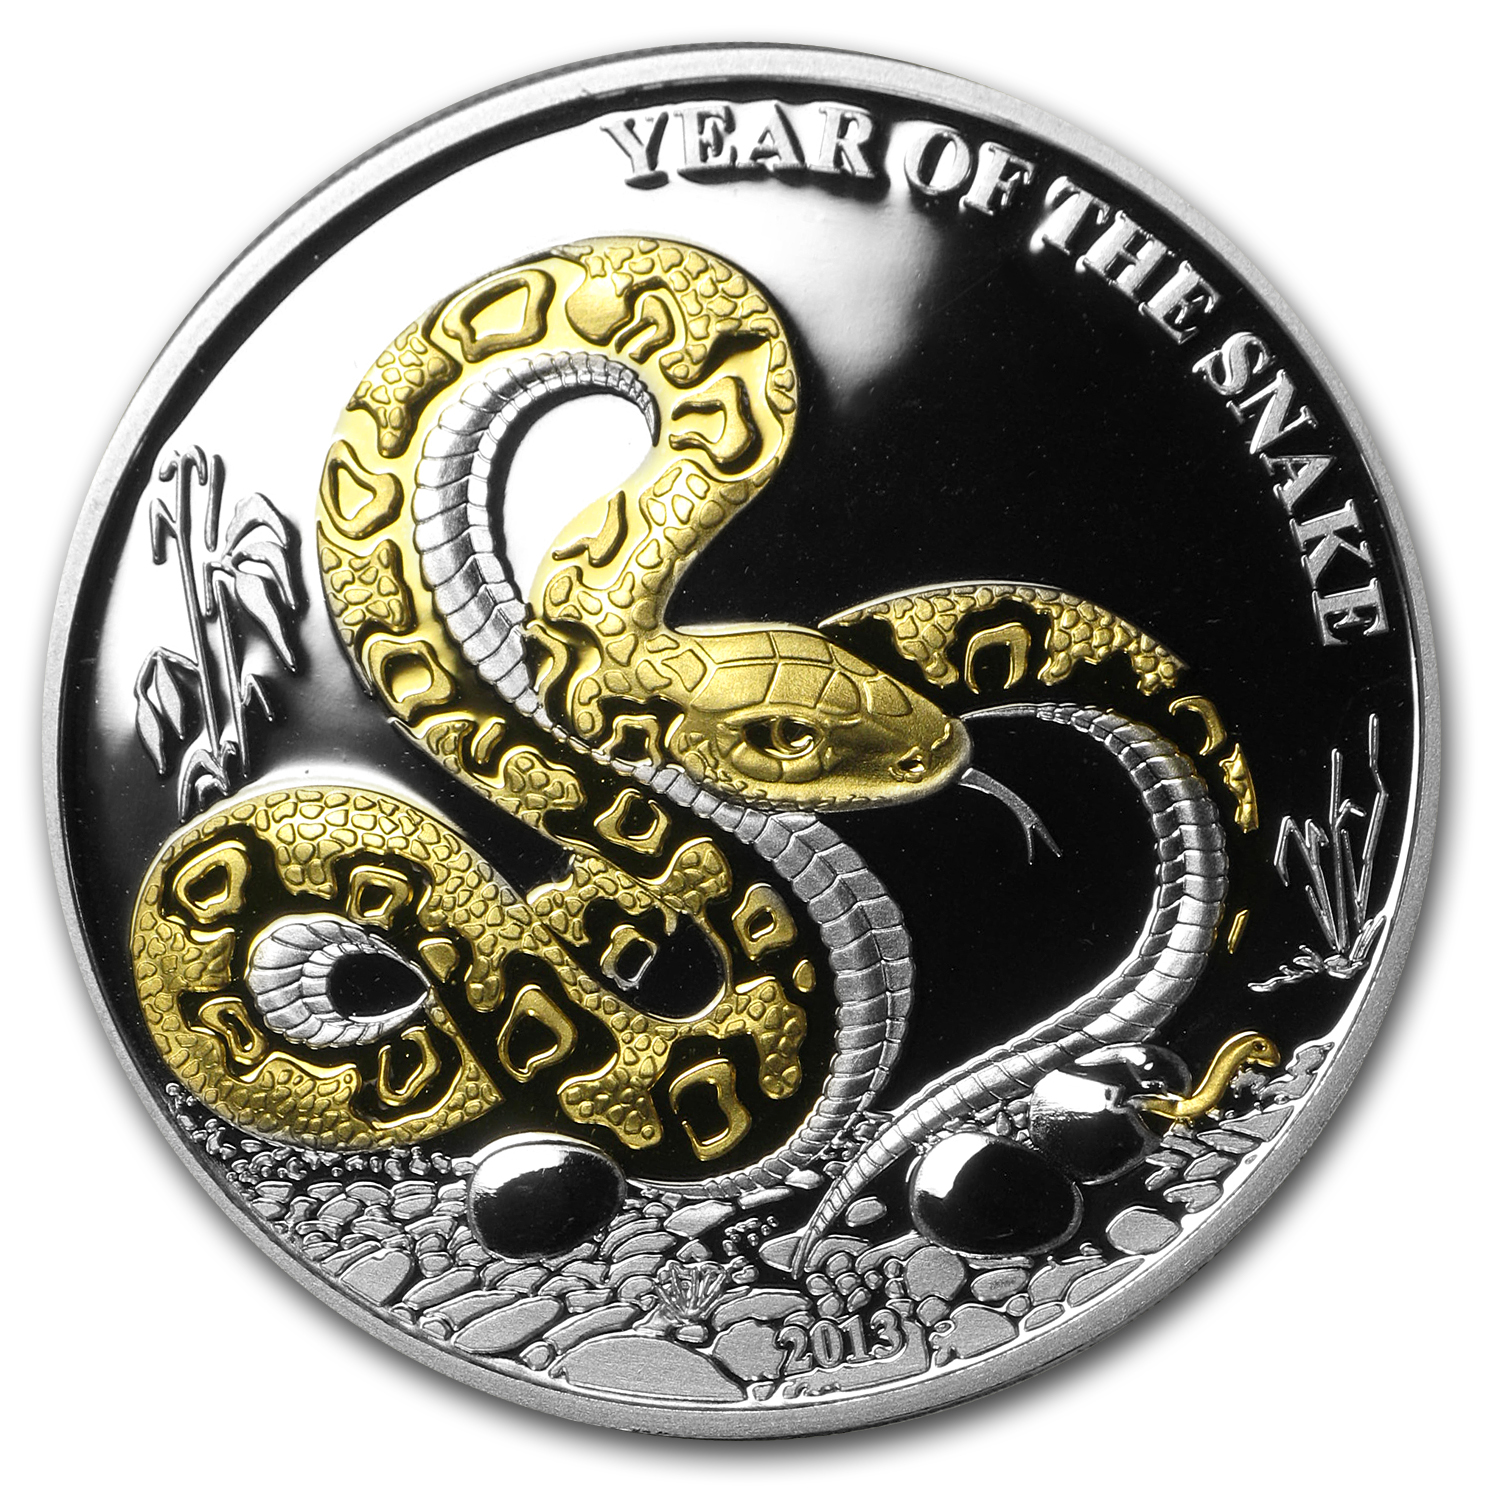 2013 Togo Silver 1,000FR CFA Year of the Snake Proof